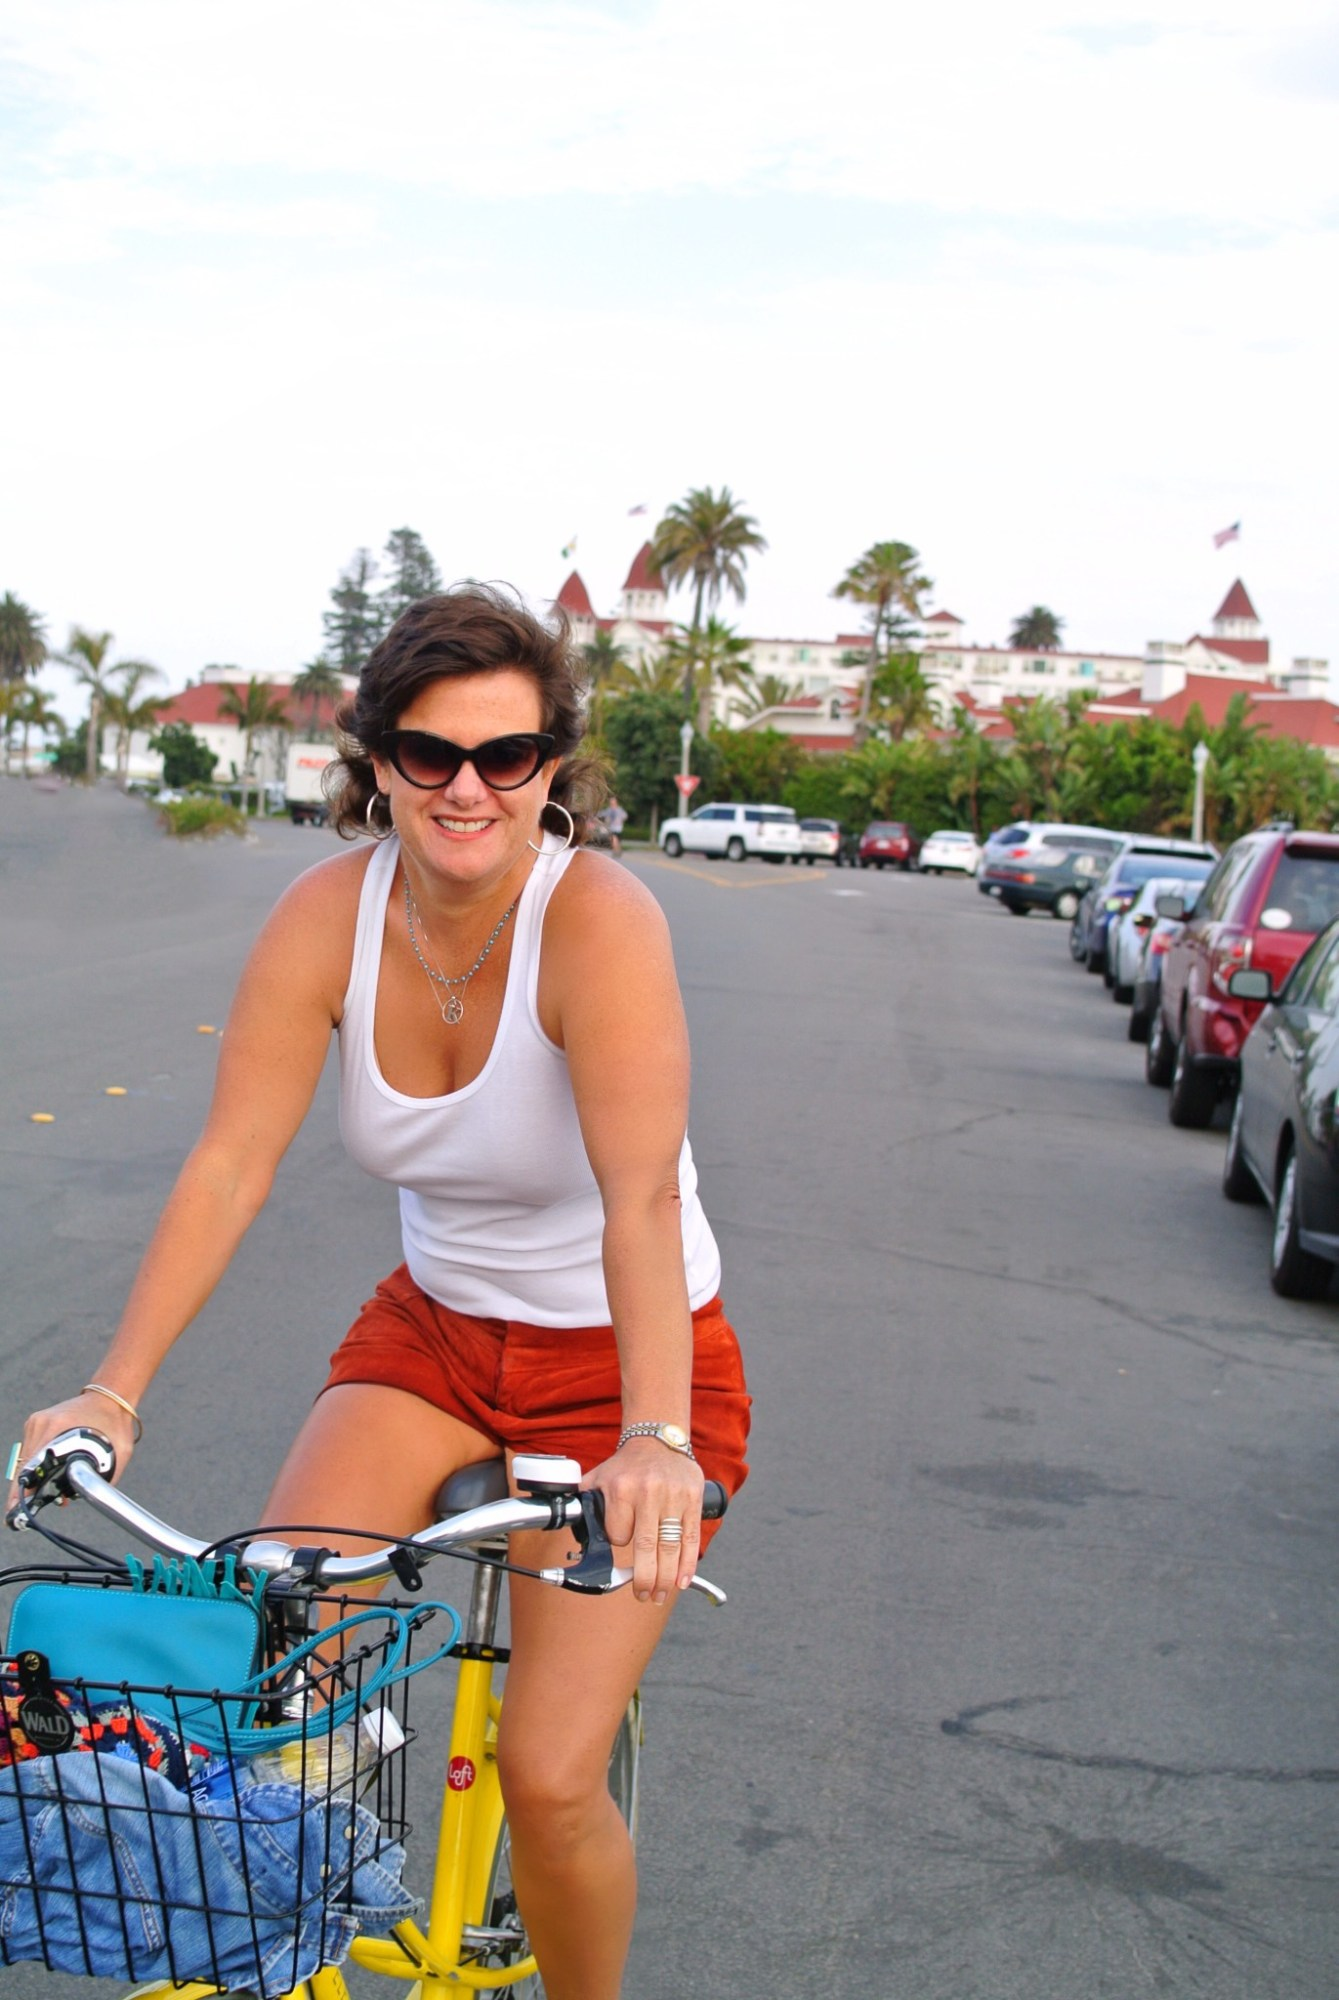 Biking in Coronado 10